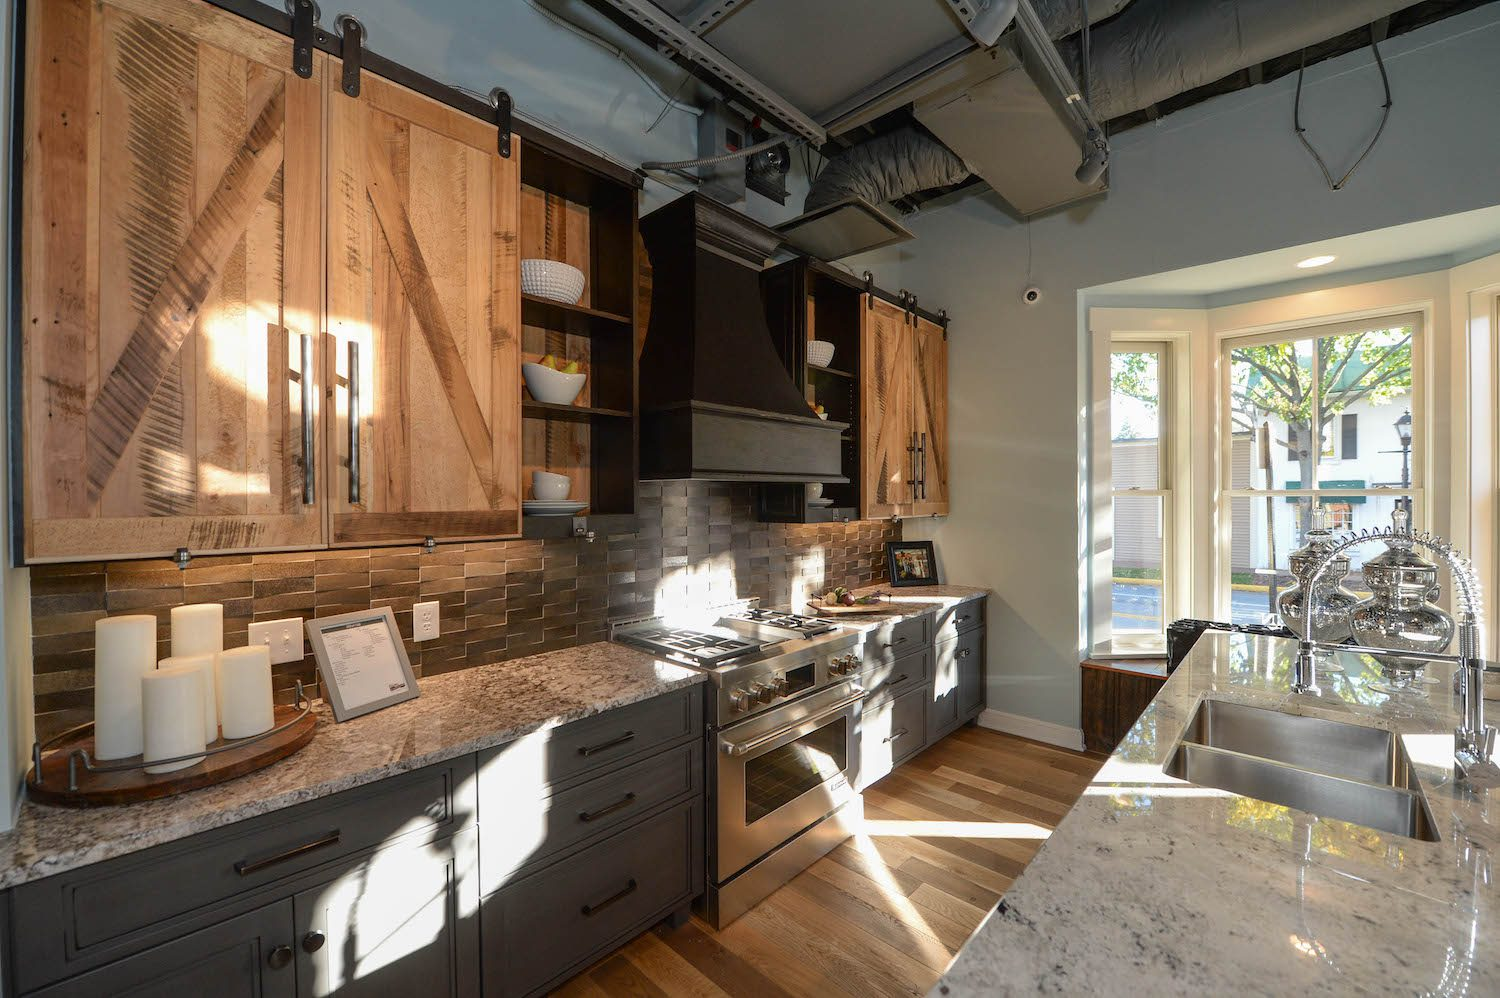 Dublin Ohio Kitchen Remodel Company